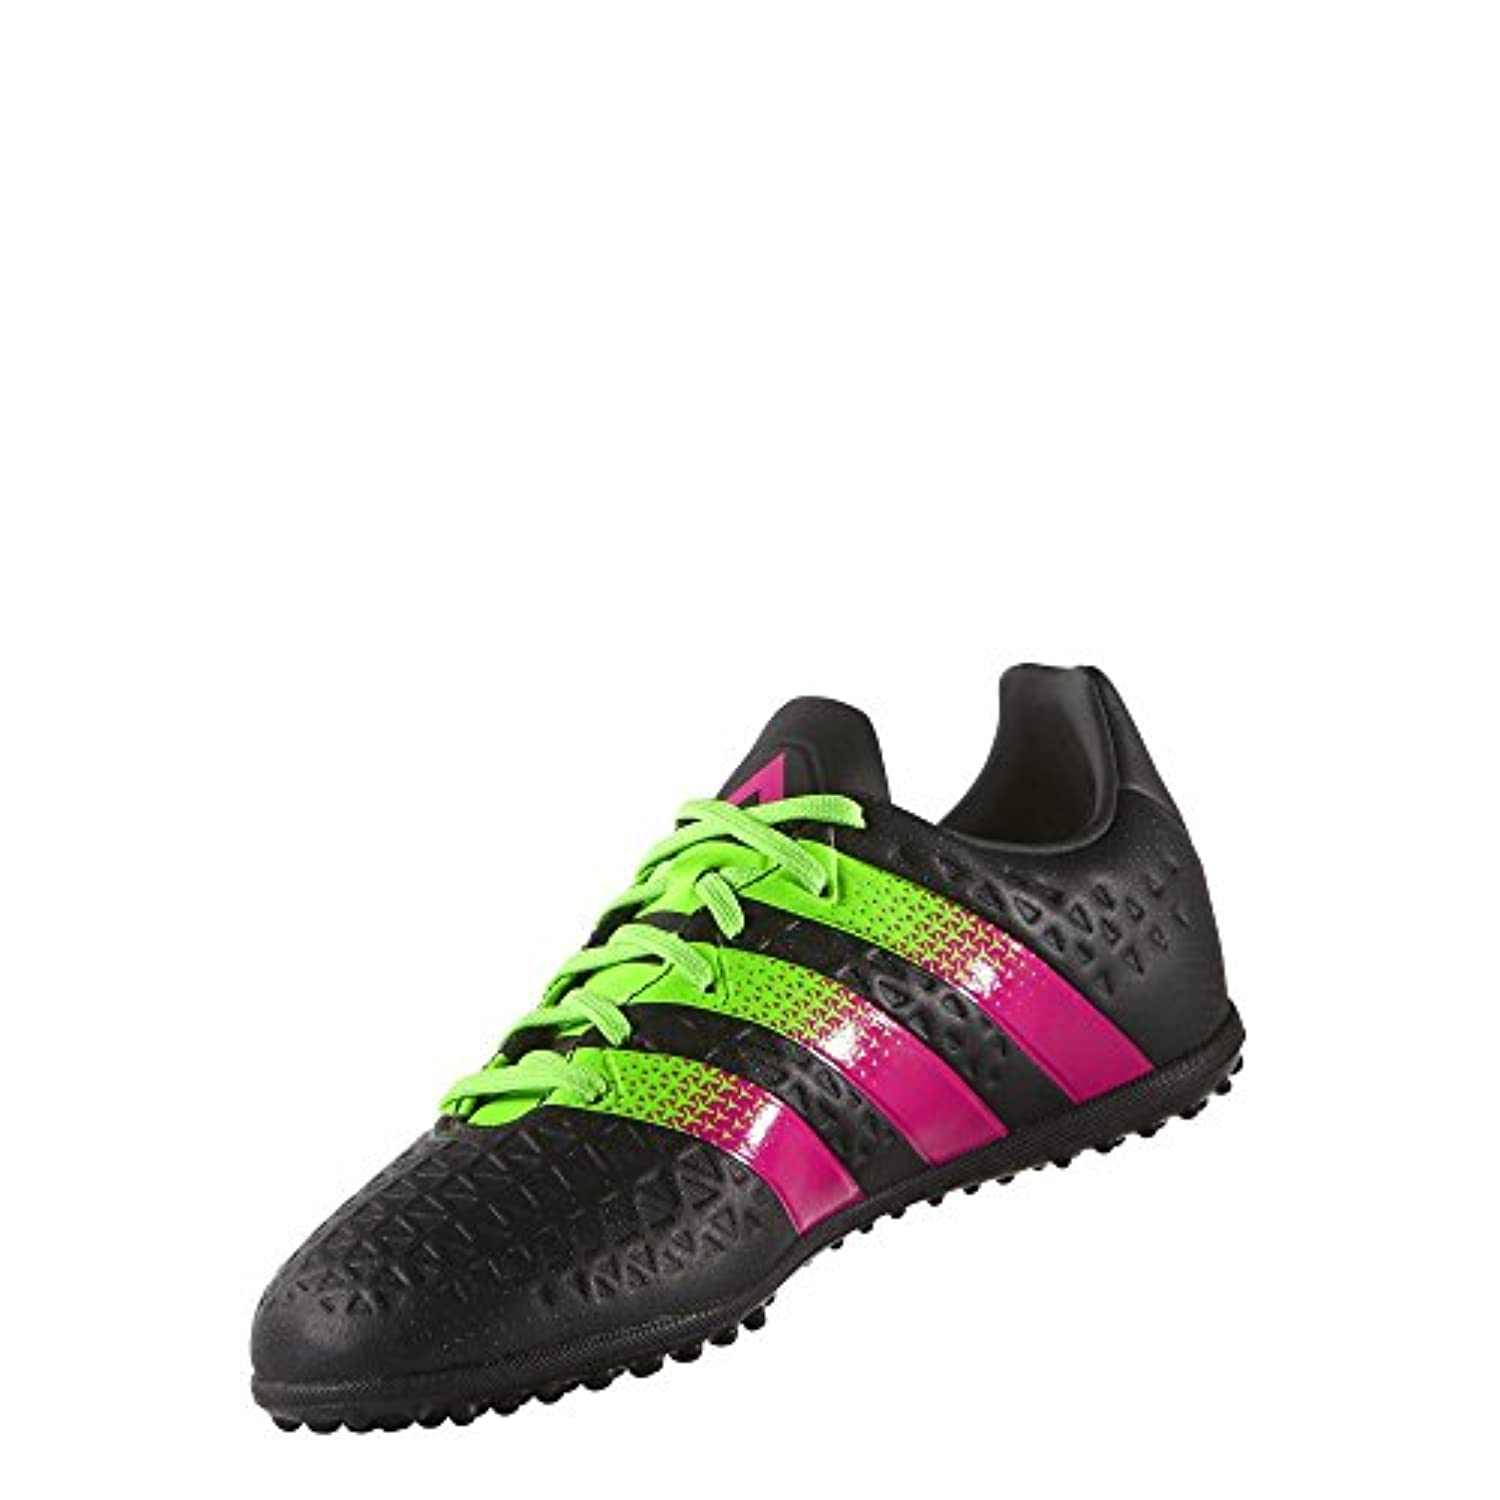 Adidas Ace 16.3 Junior TF (sizes 3-5.5) 4.5 Black/Green